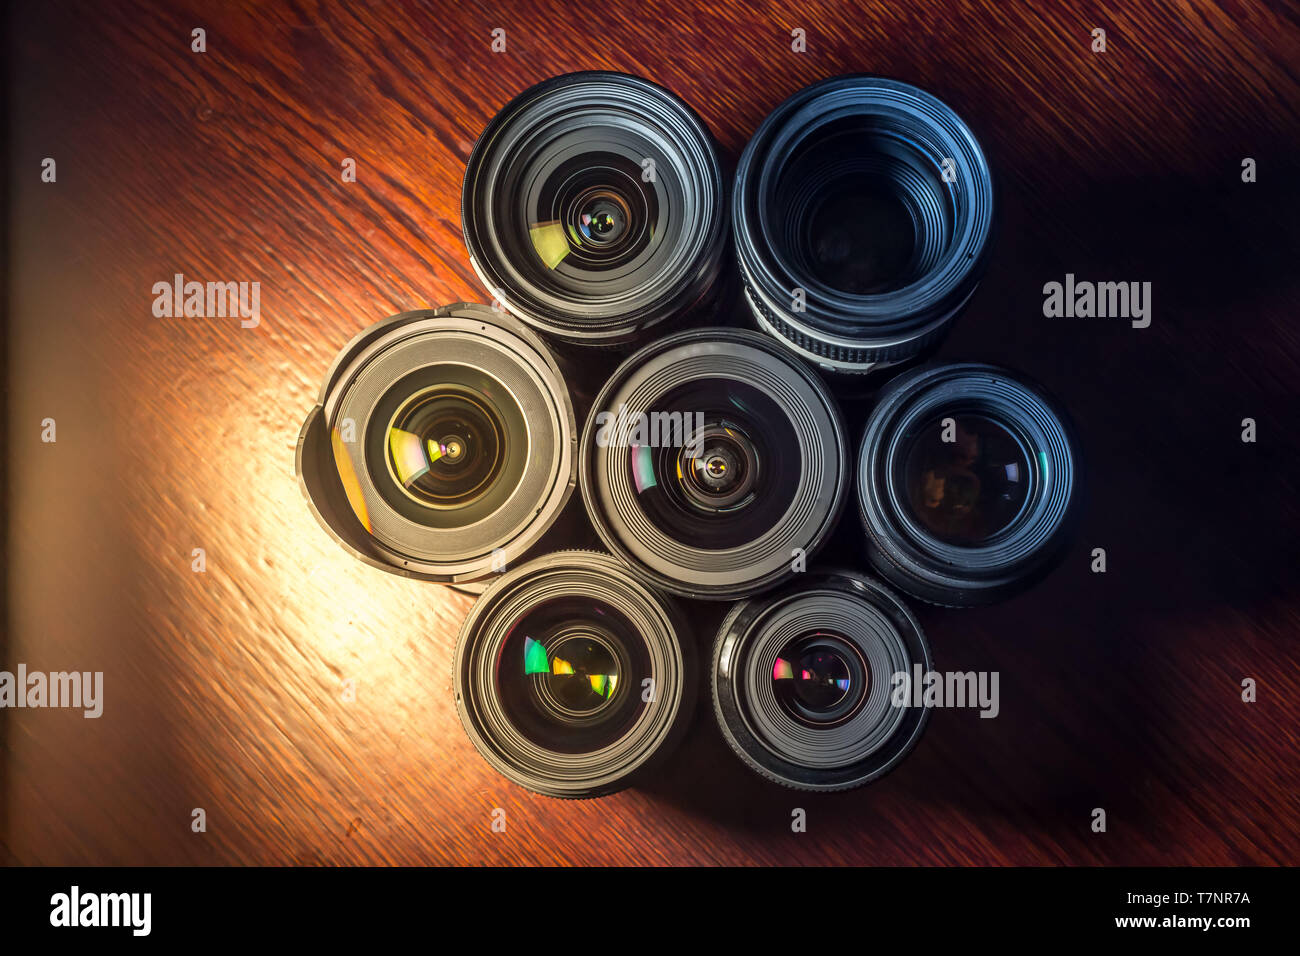 Set of various DSLR lenses with colorful reflections - shot from above on wooden background - Stock Image